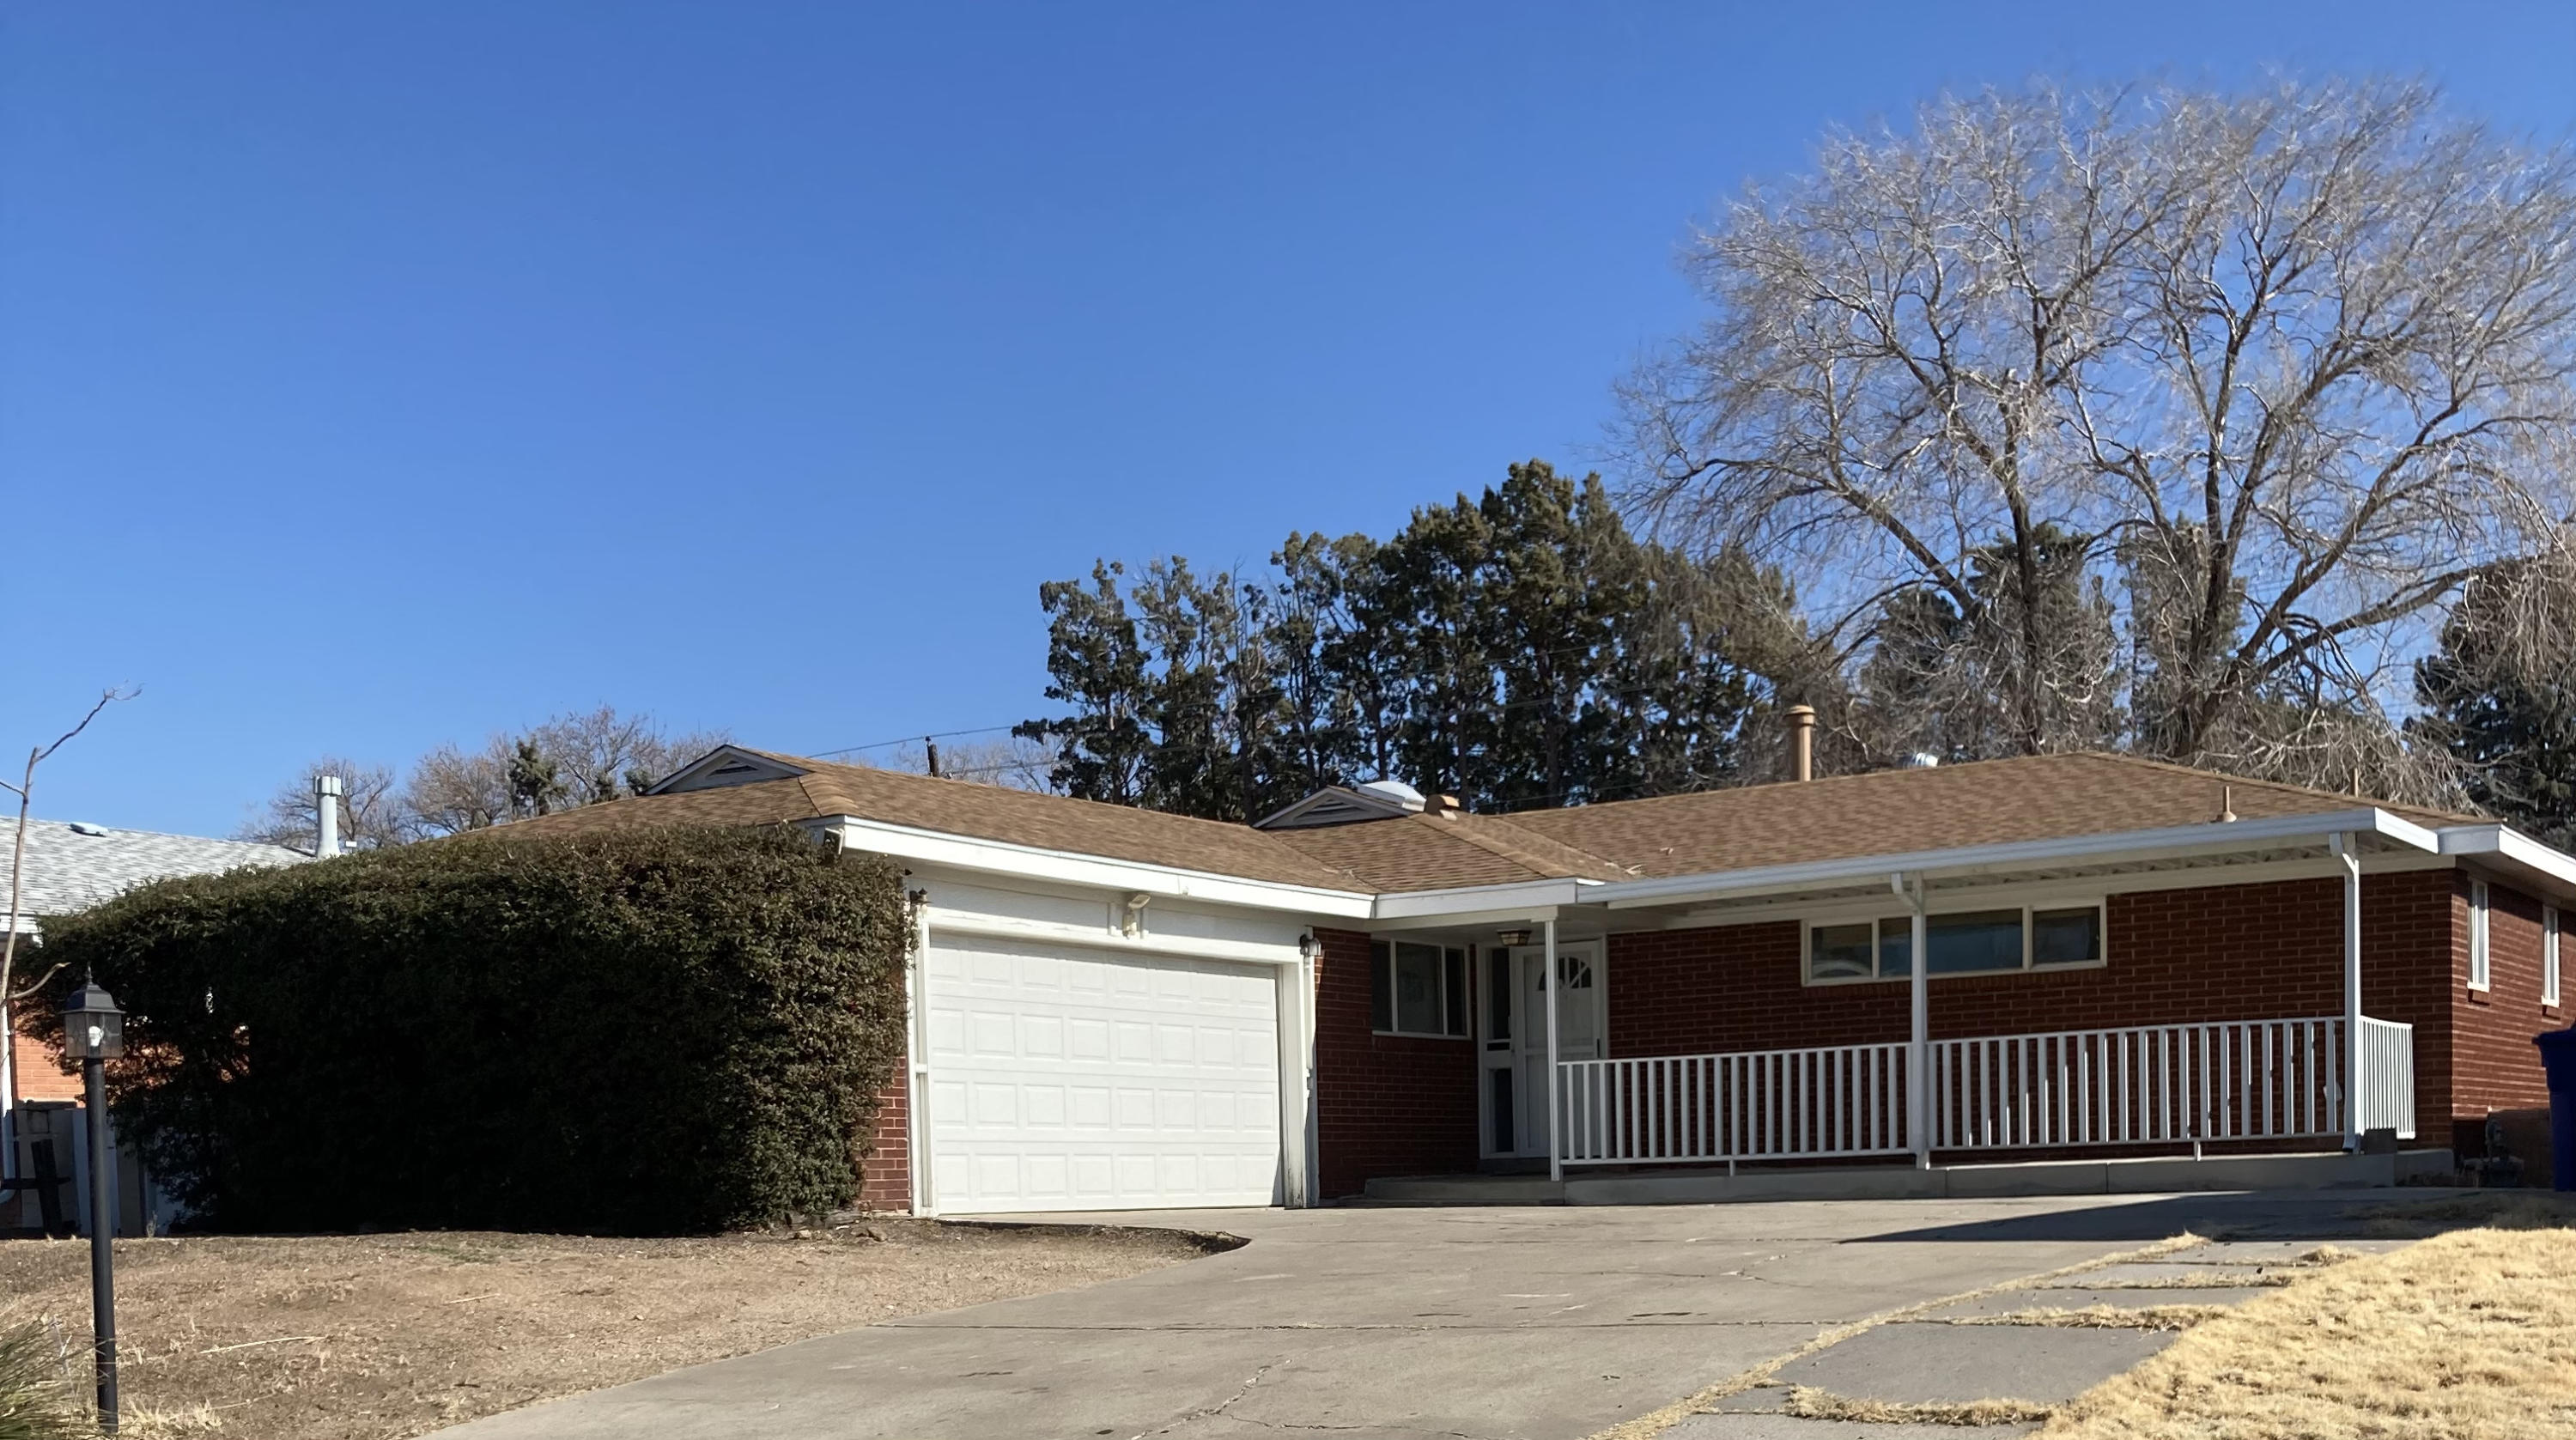 BACK ON THE MARKET!Aero Cool Air Conditioner installed Jan. 8th, Furnace 2019, Roof 2018, Vinyl Windows . 4 Brms possible 5. 2 Liv Areas, 3 baths. Shaker cabinets w/metal pulls. wood floors in most of upper level. Basement w/ huge 2nd Livrm. additional large space could be 5th brm or rec. room? Perfect sweat equity opportunity!